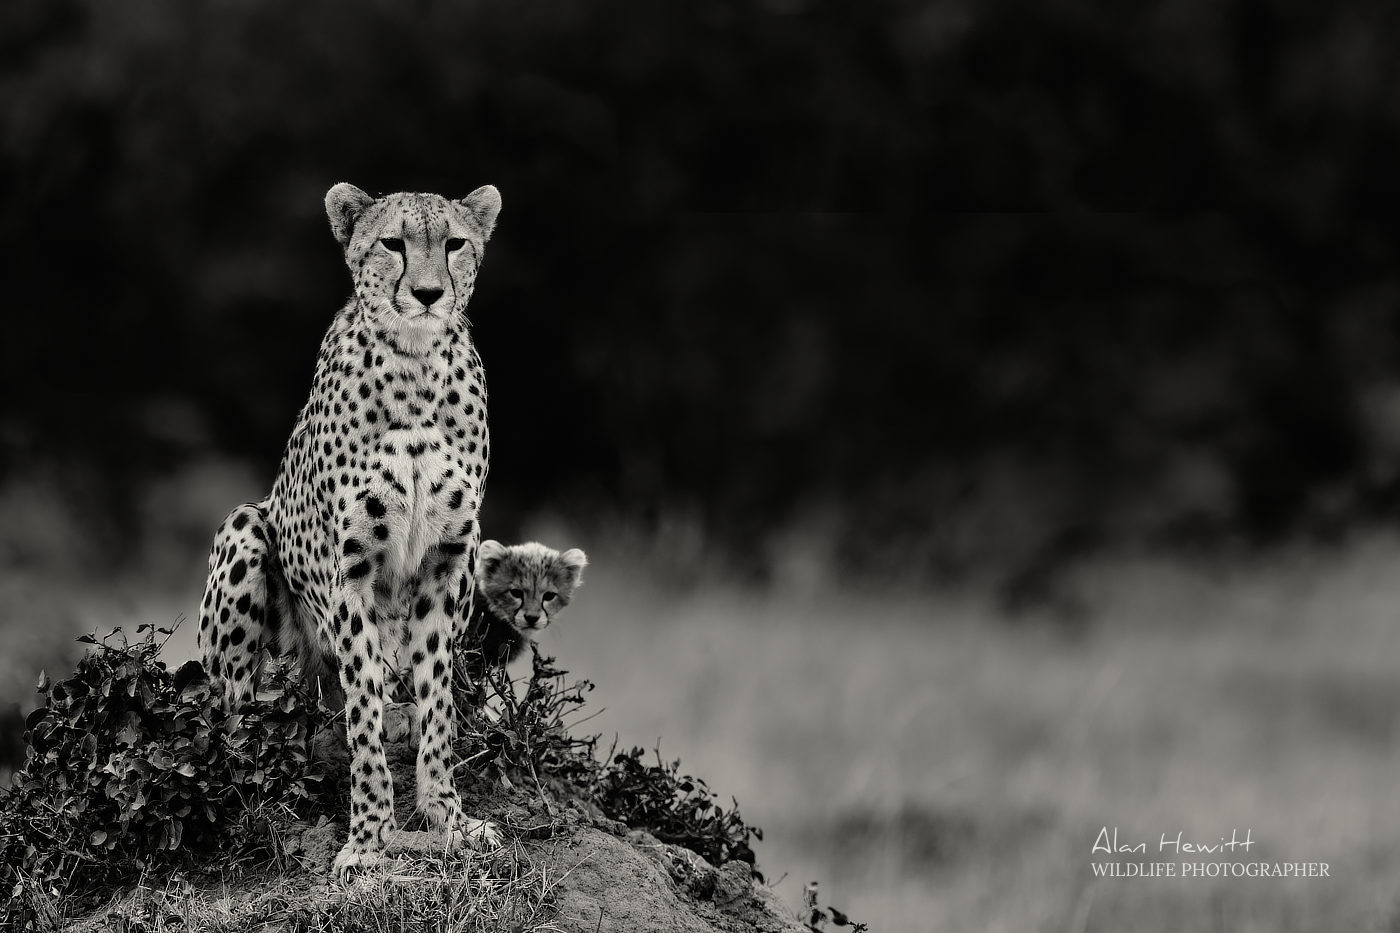 Female Cheetah, 'Kisaru'. Photographed with the Fujifilm X-H1 & Fujinon 200mm f/2 & 1.4x f/2 converter.